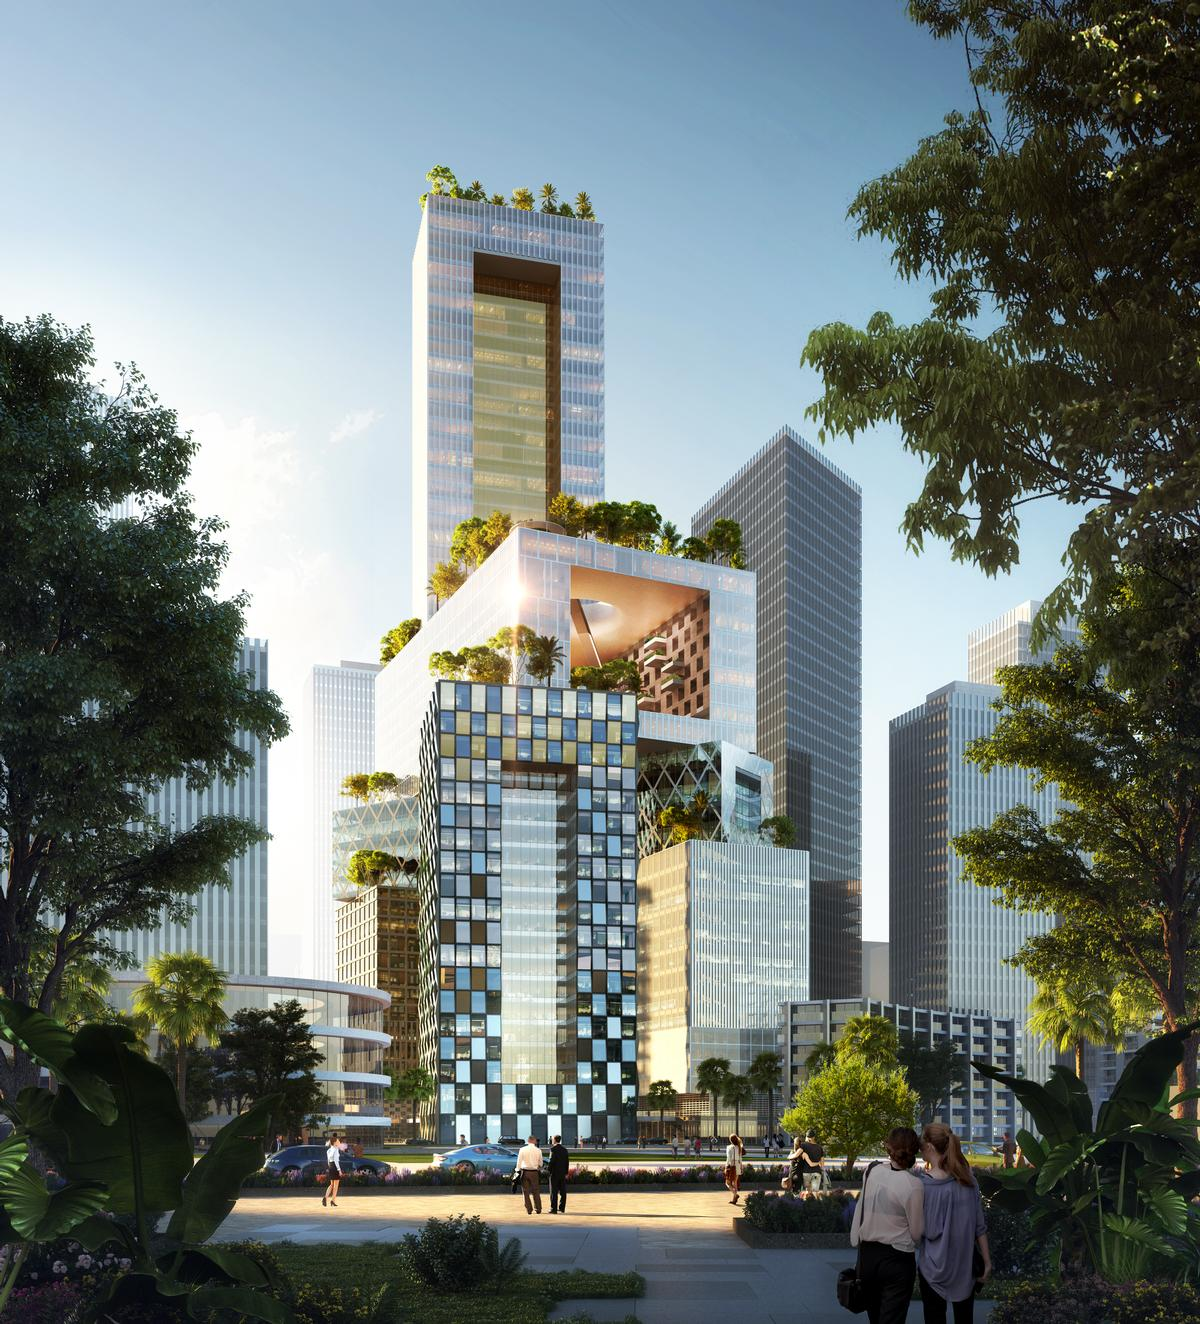 The ambitious, porous design is said to be the result of MVRDV's research into vertical cities in 2009. / Courtesy of MVRDV